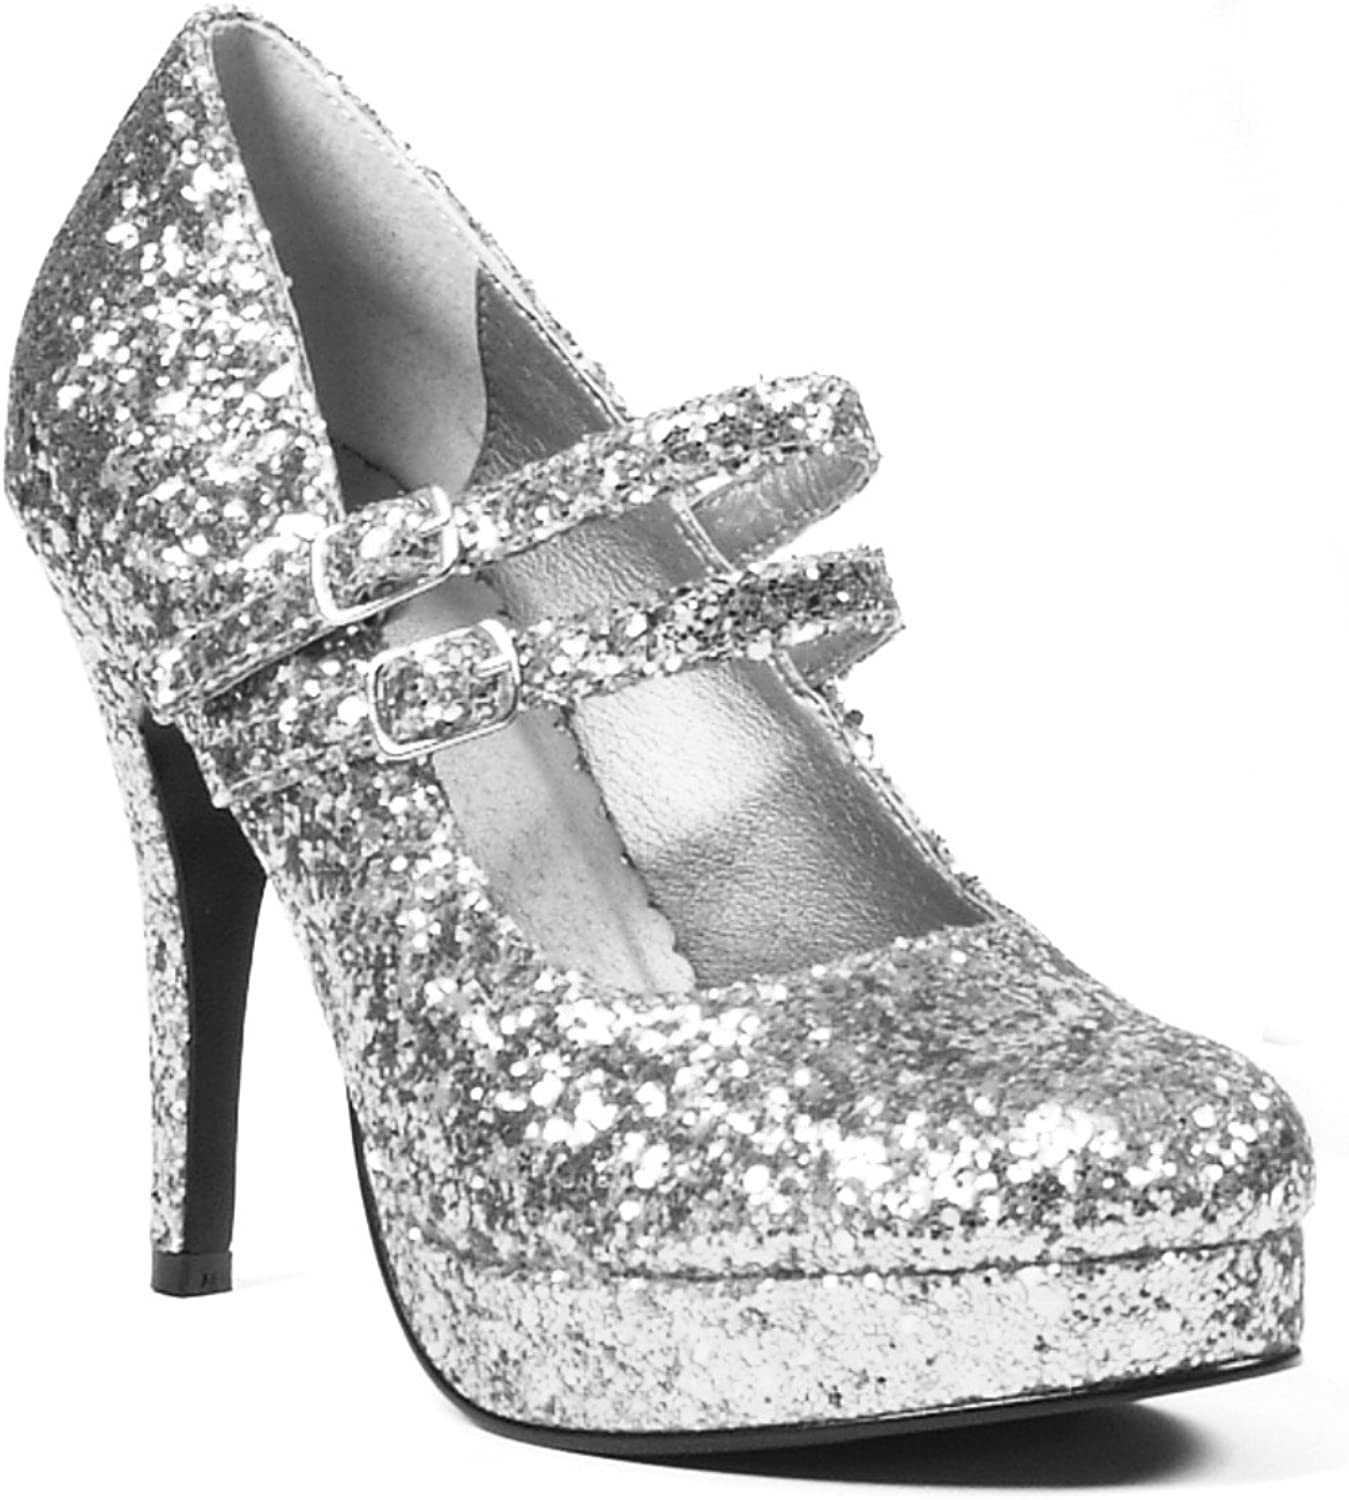 Ellie shoes E-421-Jane-G 4  Double Strap Glitter Mary Jane. 7 Silver Glitter